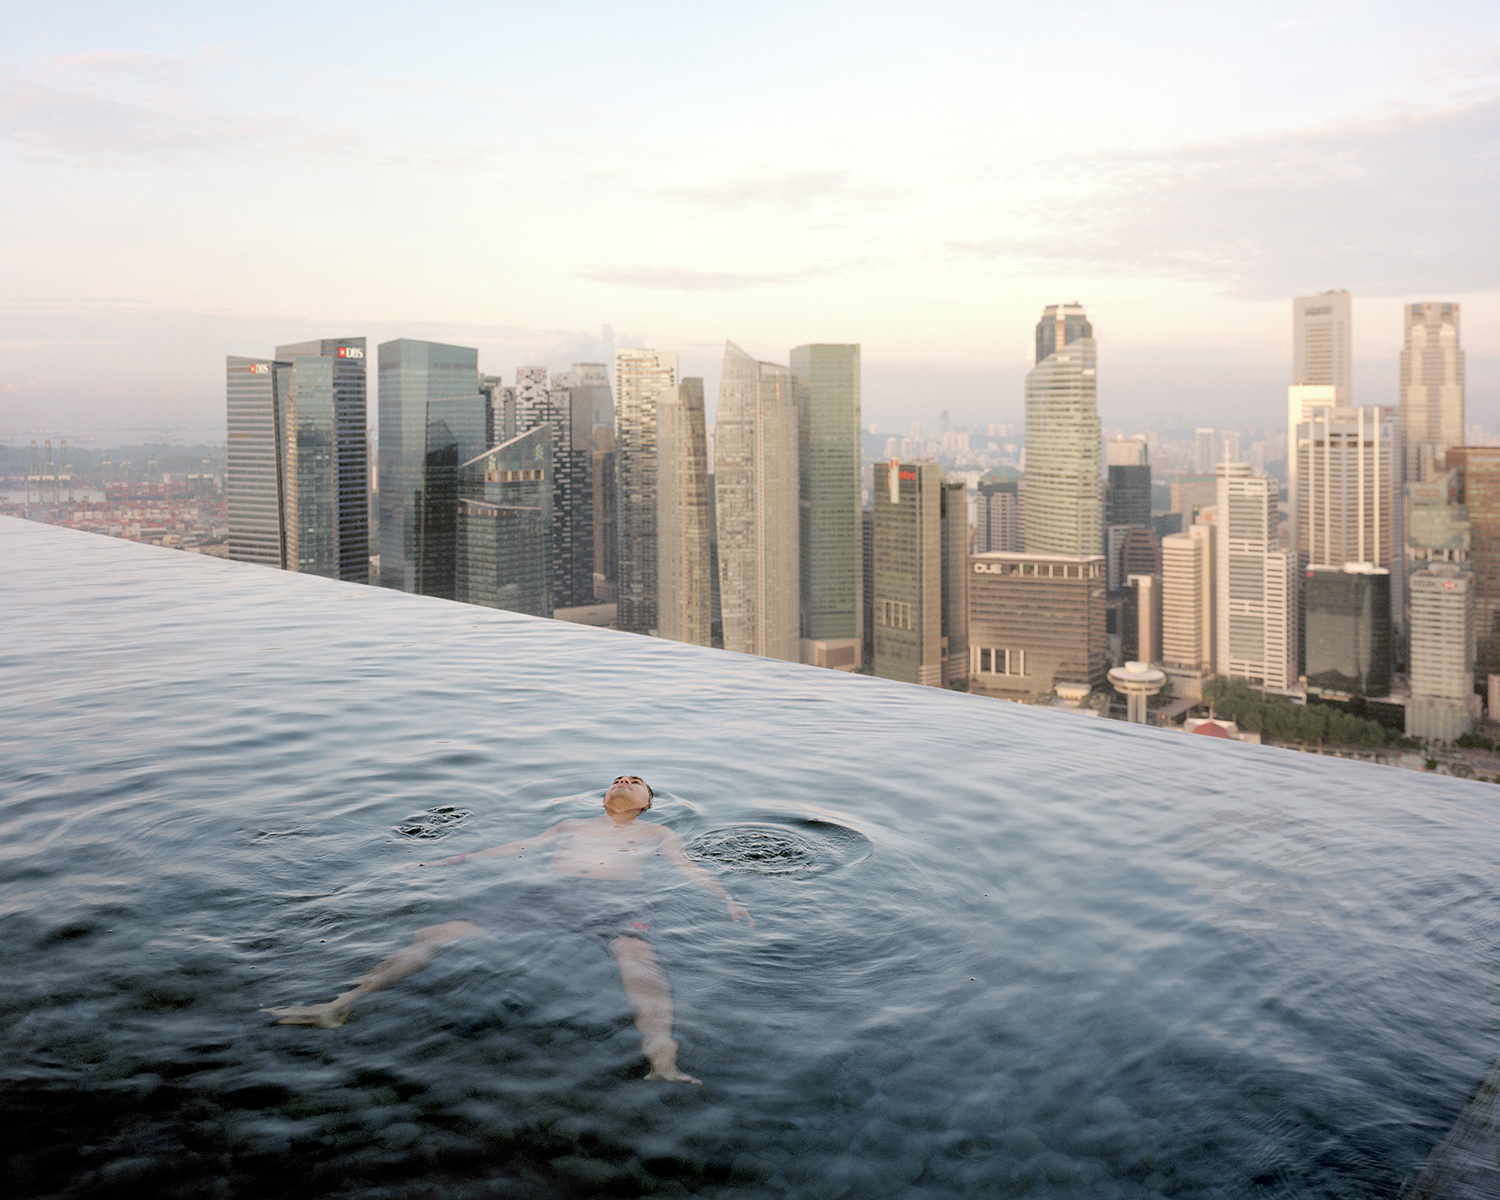 A man floats in the 57th-floor swimming pool of the Marina Bay Sands Hotel, with the skyline of the Singapore financial district behind him, 2013 © Paolo Woods & Gabriele Galimberti—INSTITUTE